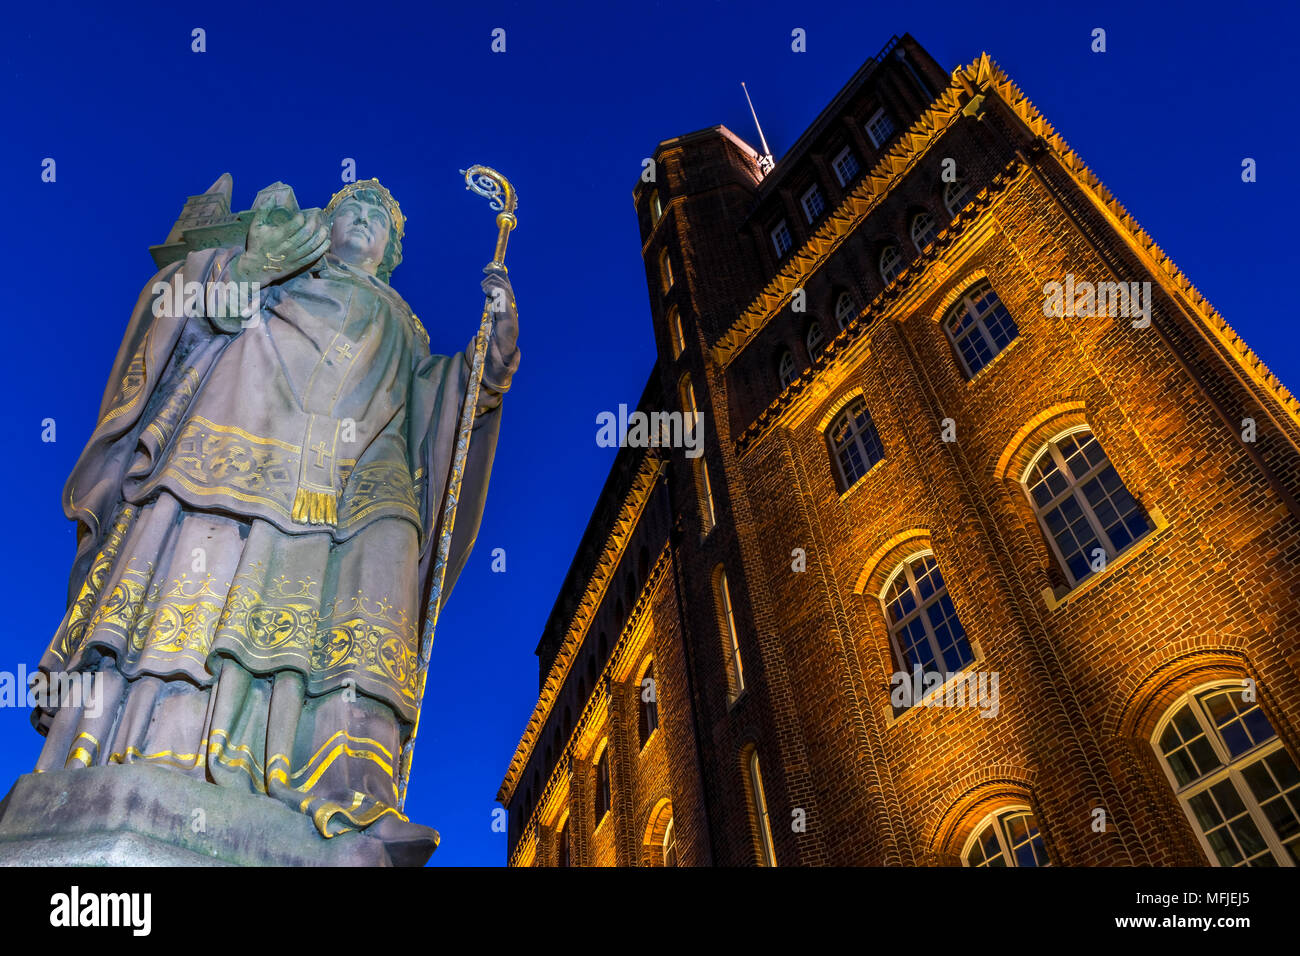 St. Ansgar Statue and Haus der Patriotischen Gesellschaft at Trostbruecke at dusk, Hamburg, Germany, Europe - Stock Image